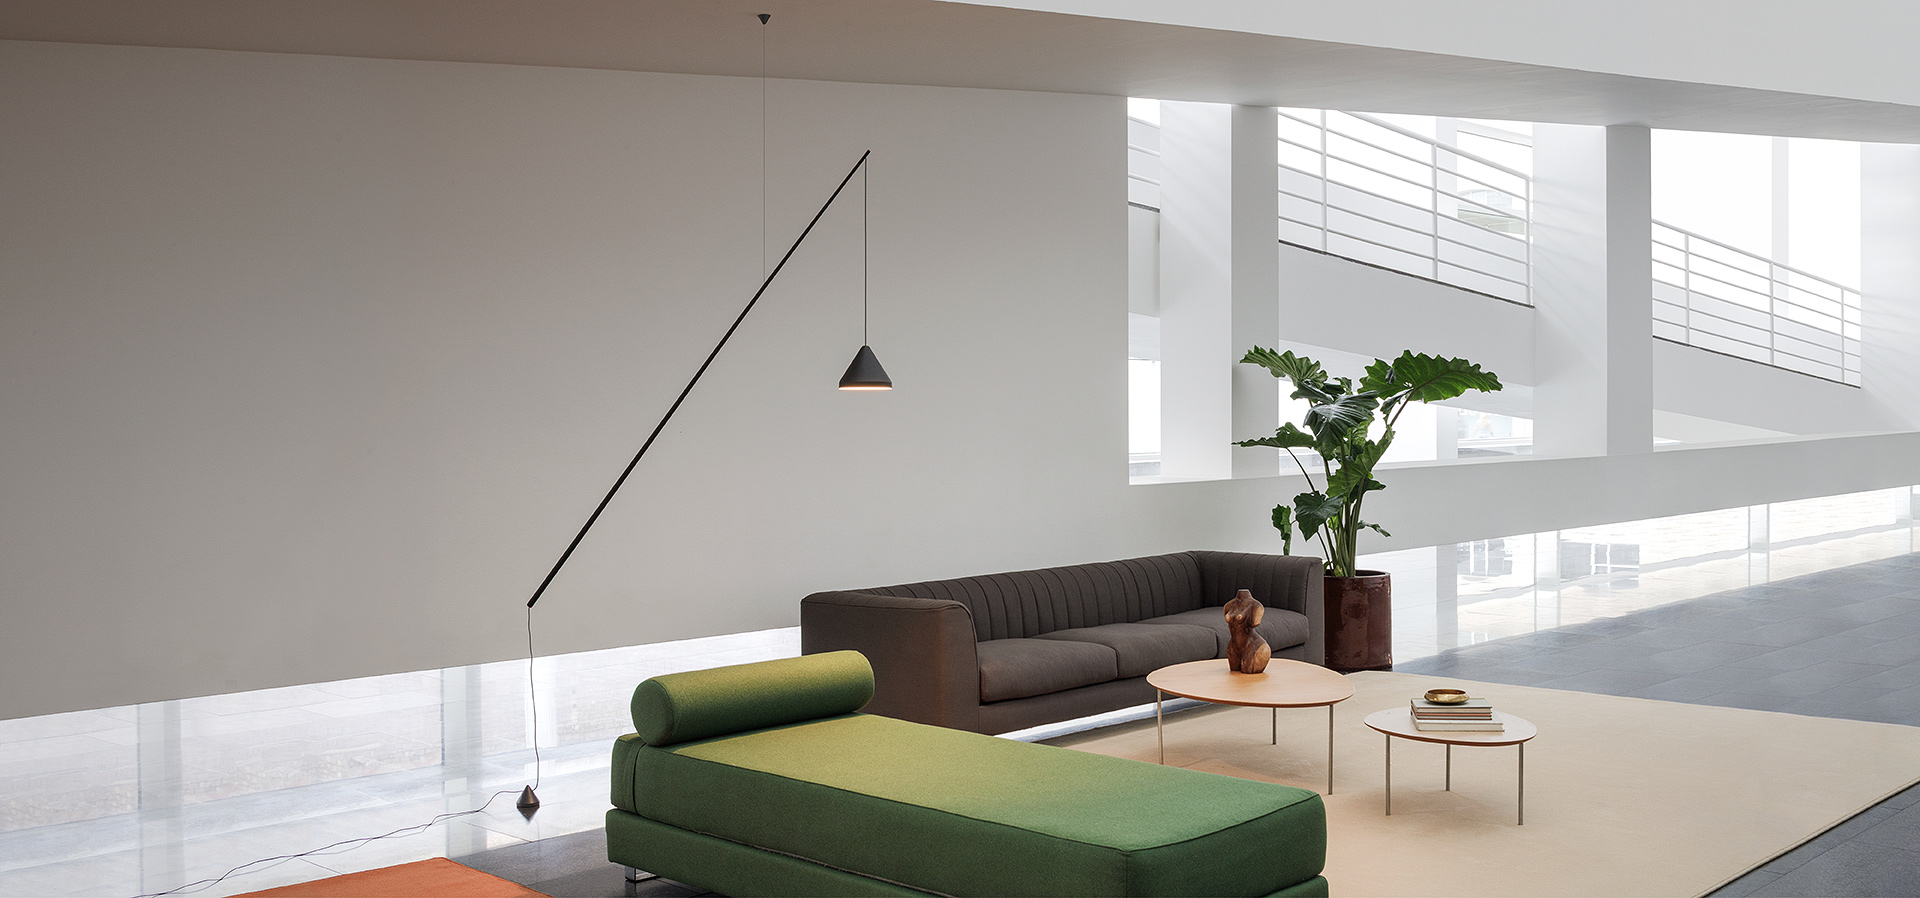 North floor pendant by Arik Levy for VIbia